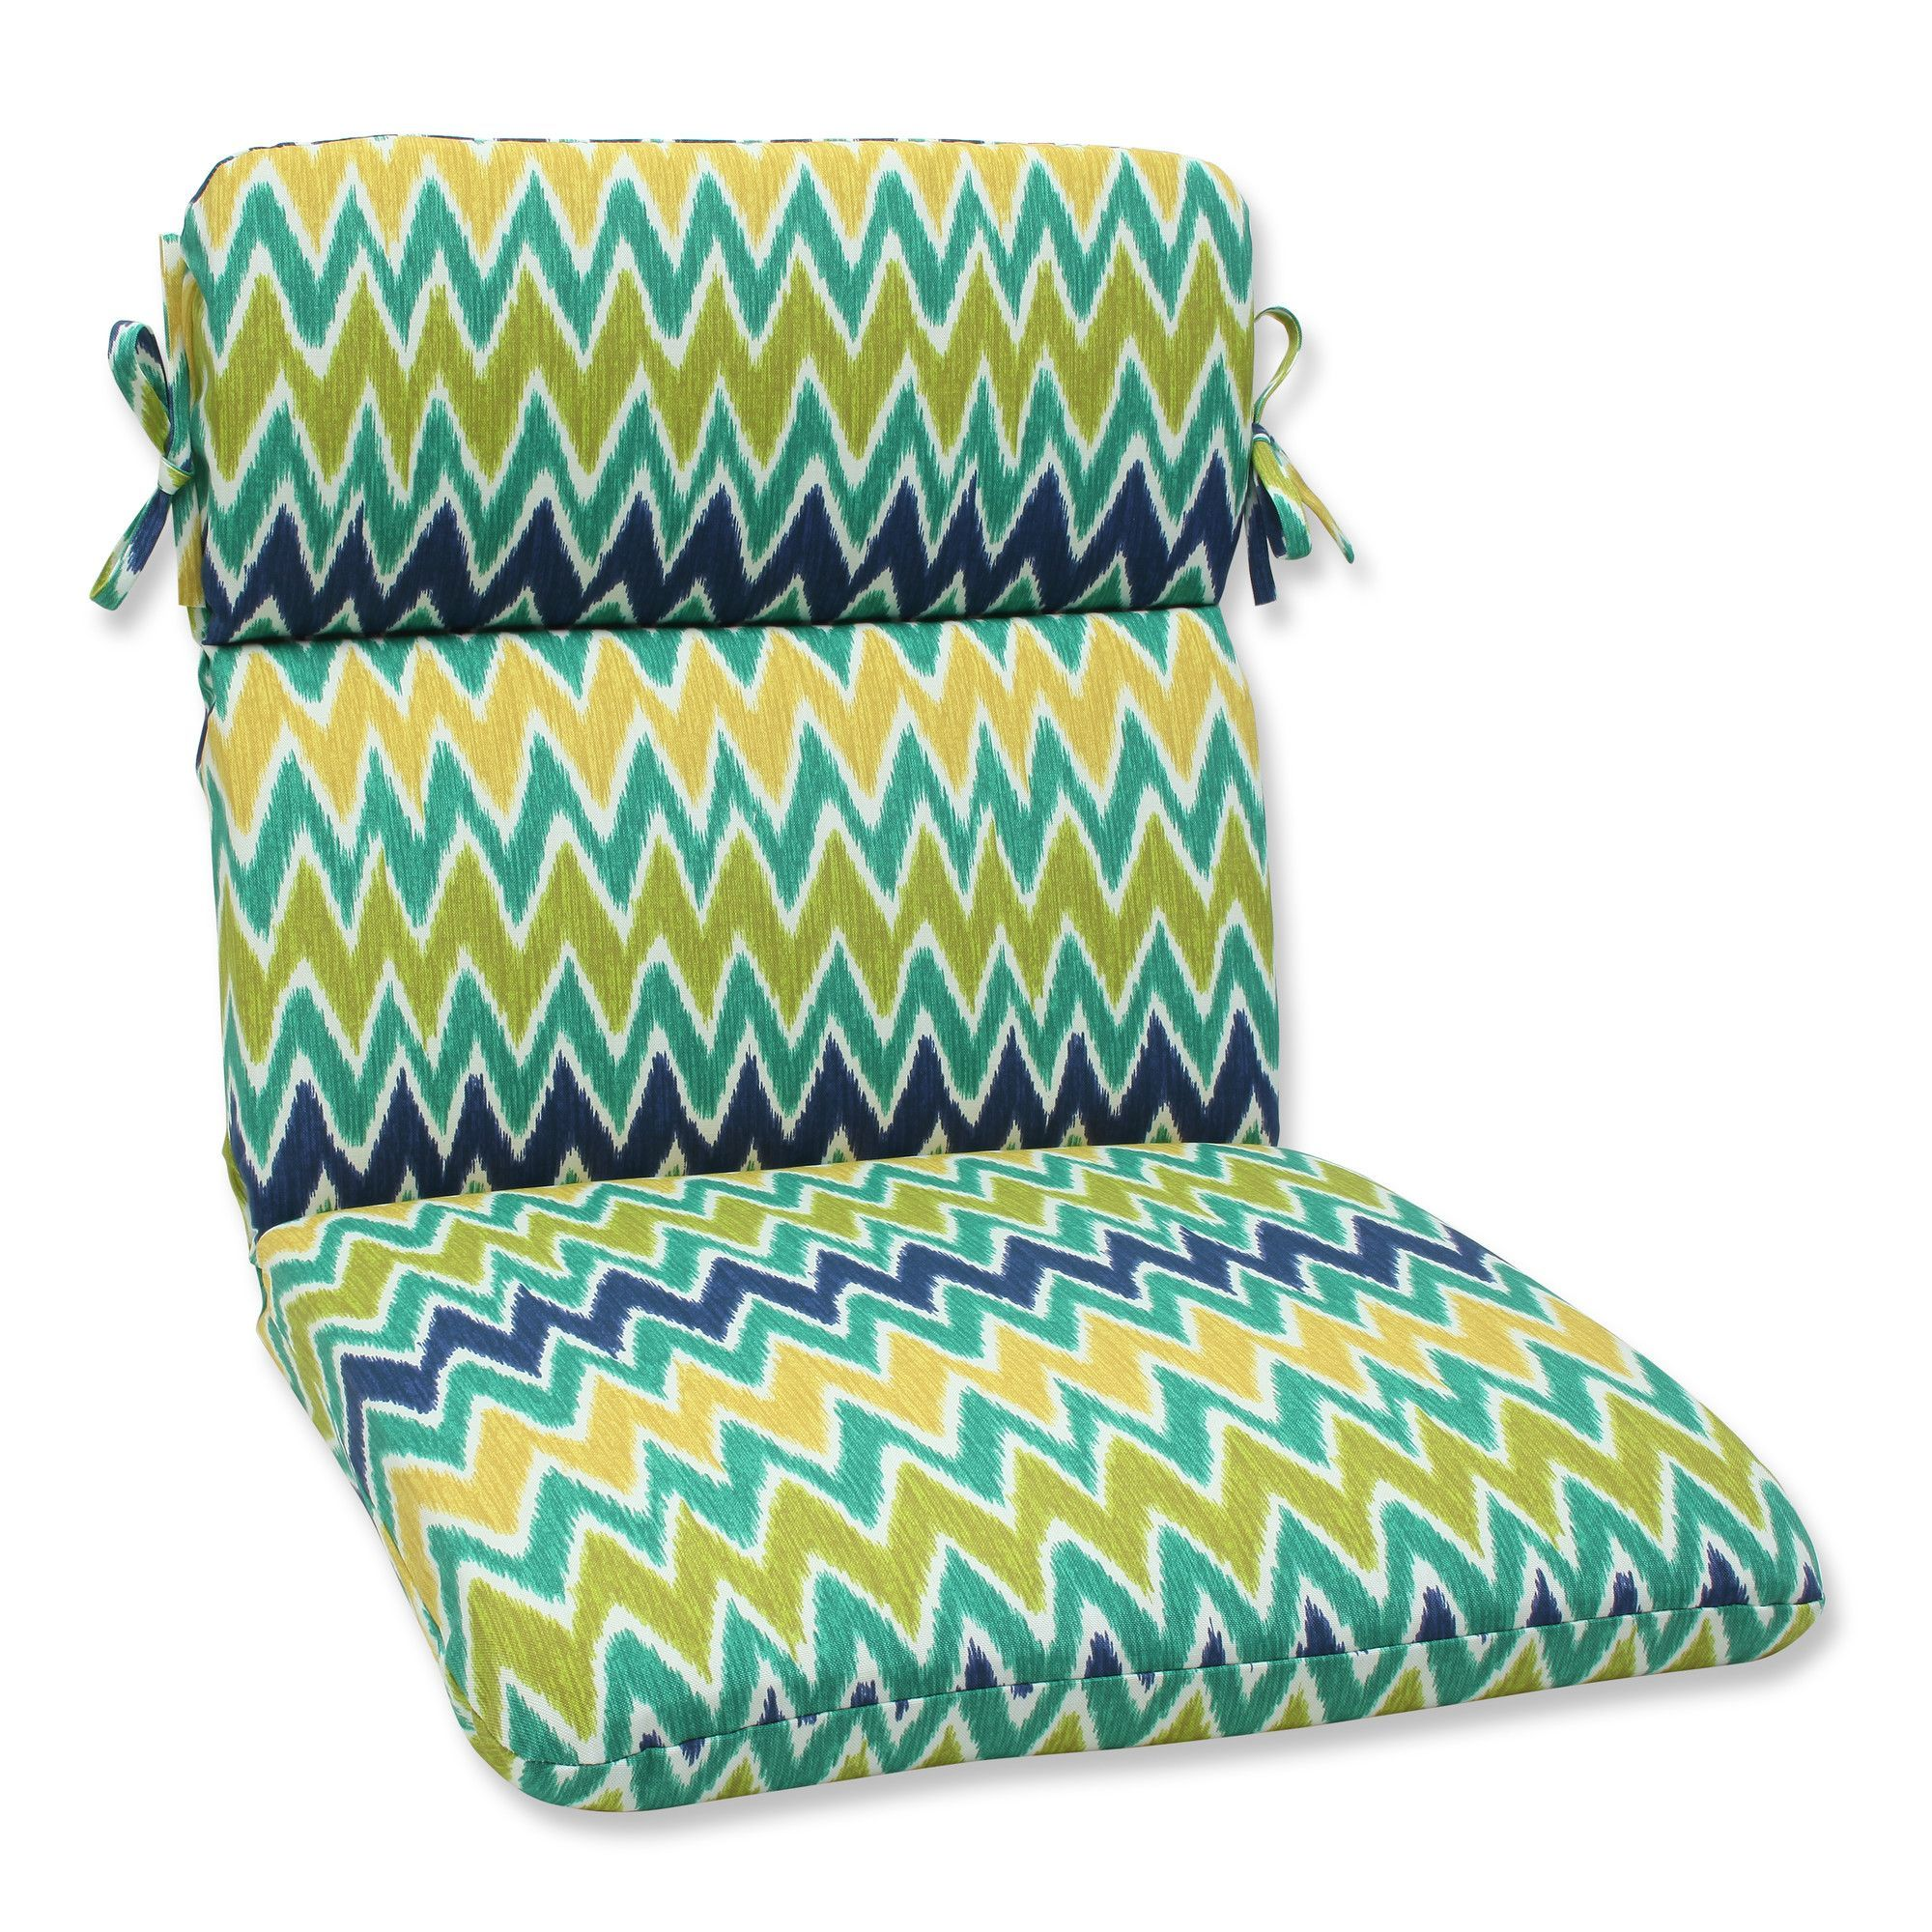 Zulu Outdoor Chair Cushion Products Pinterest